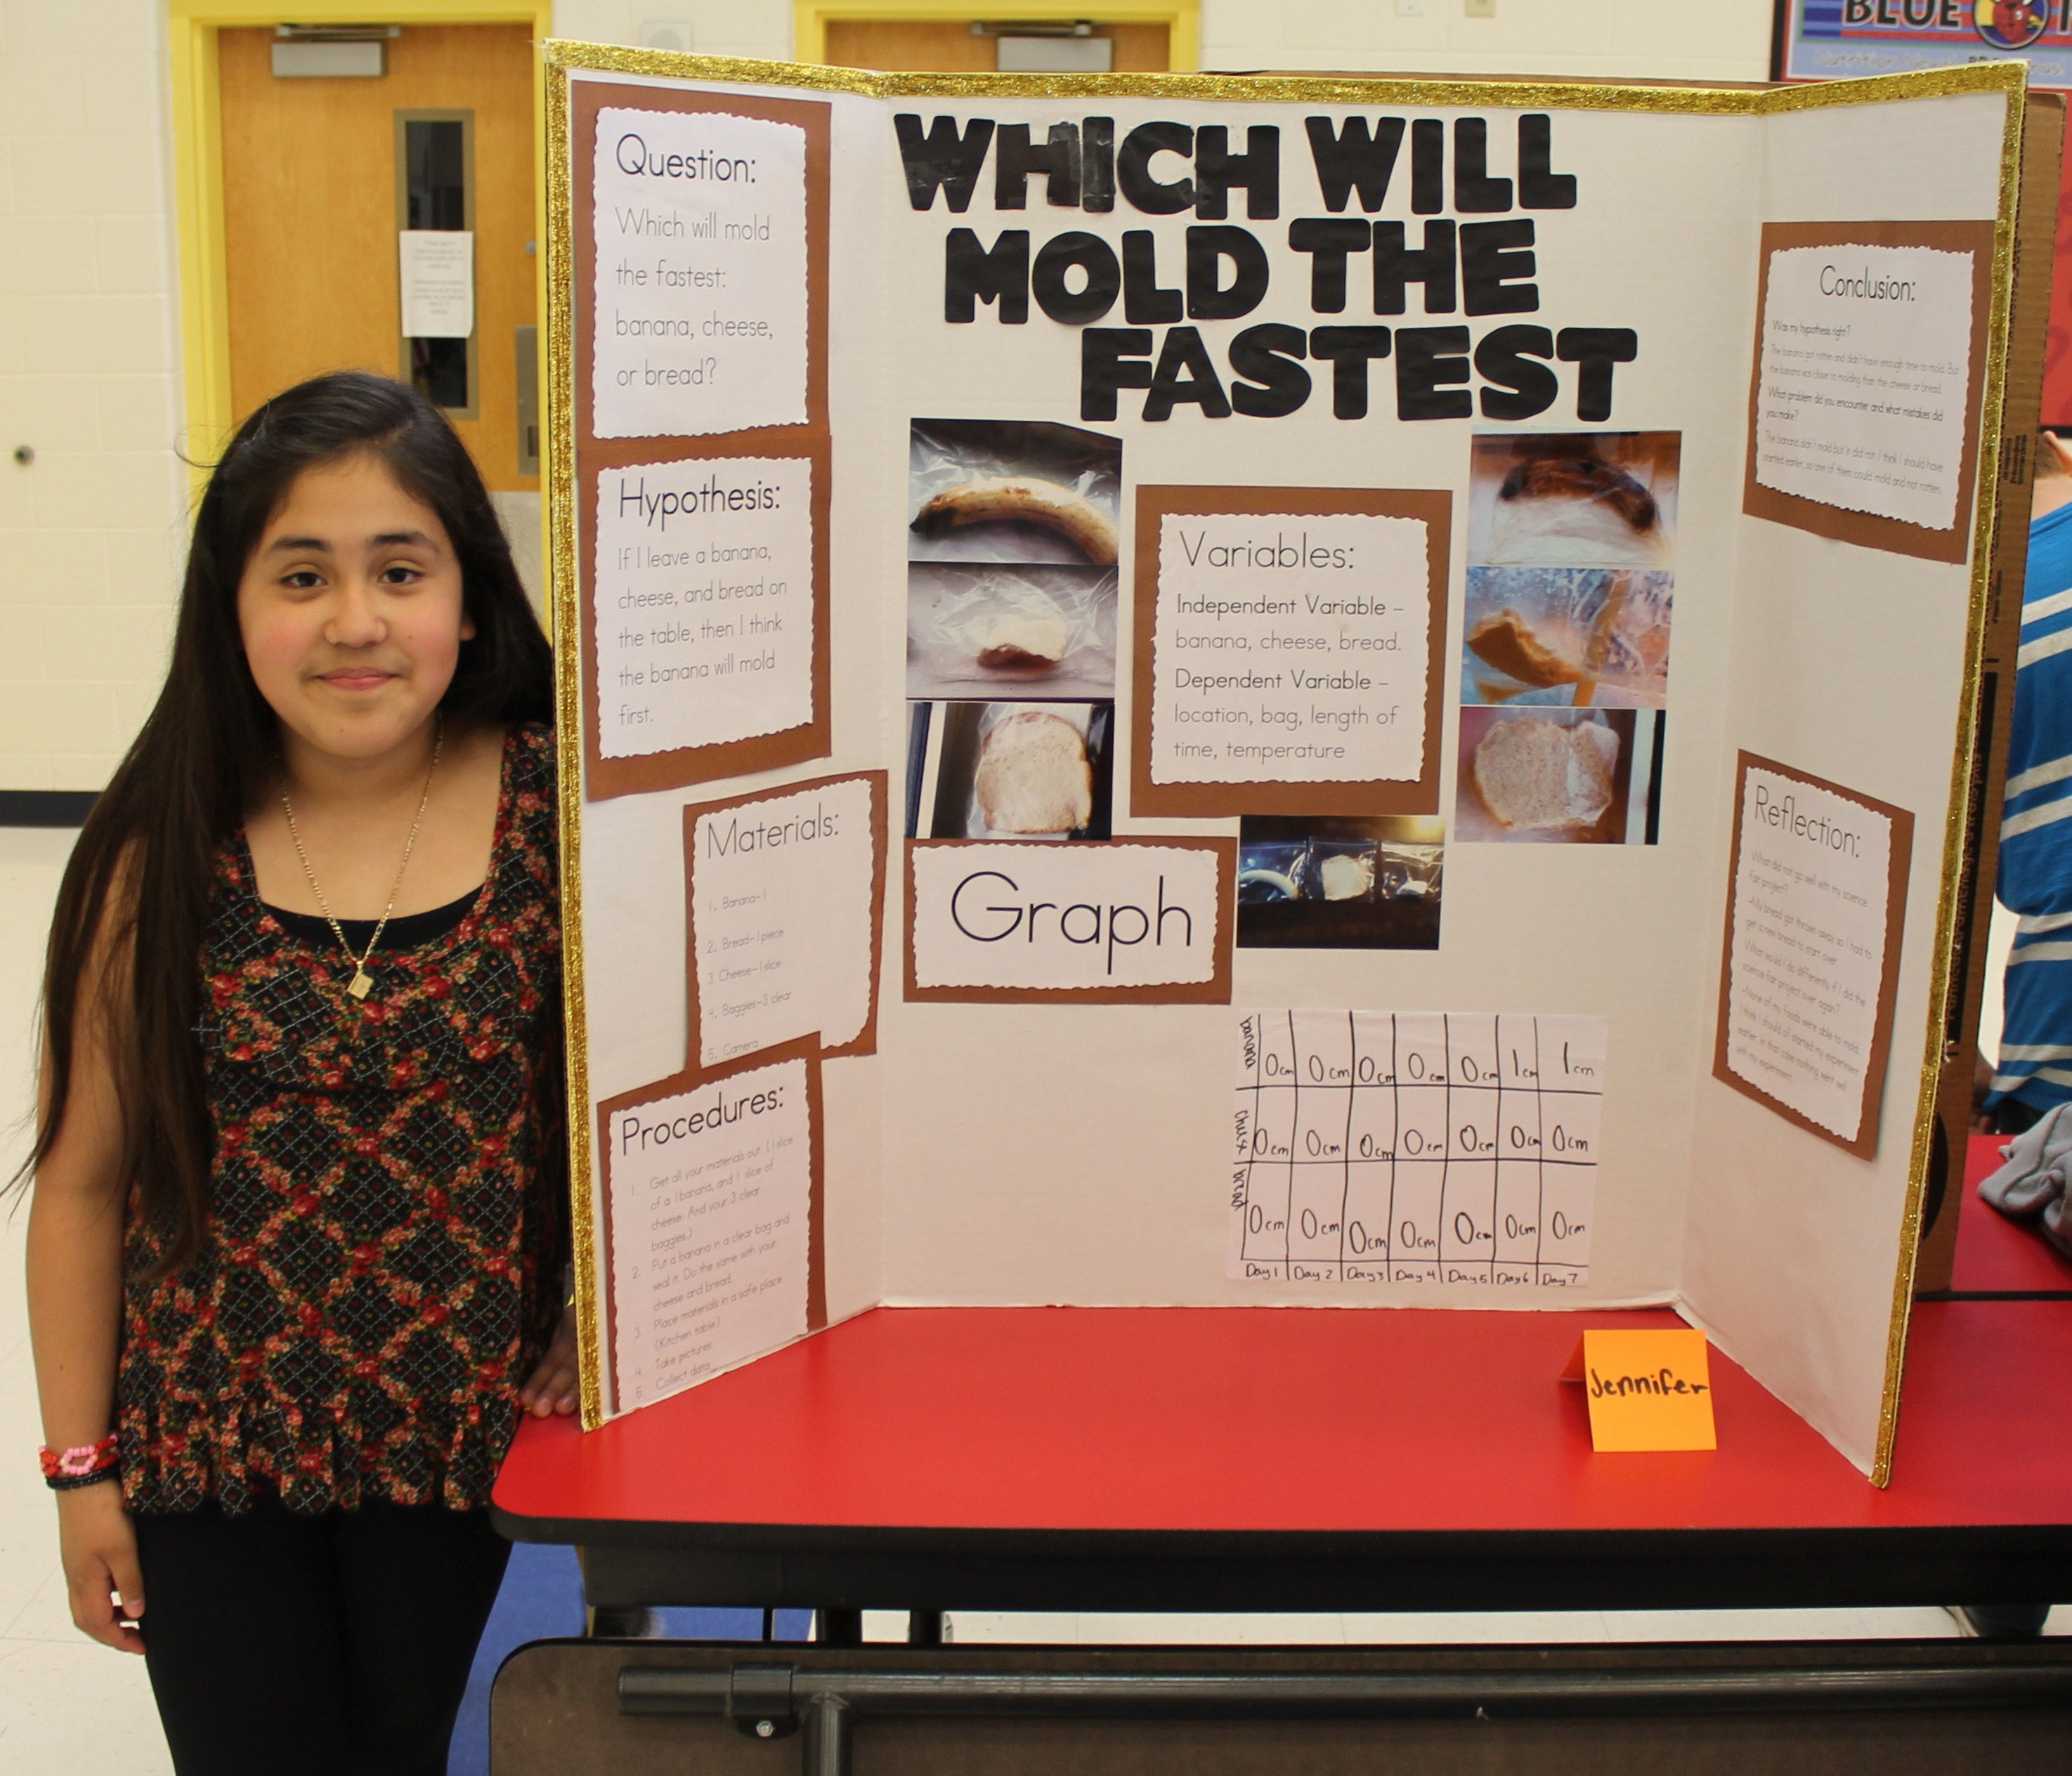 science fair projects on food Get ready for the science fair 20 science fair project ideas for kids based on grade level 20+ science fair projects that will wow the crowd food coloring.